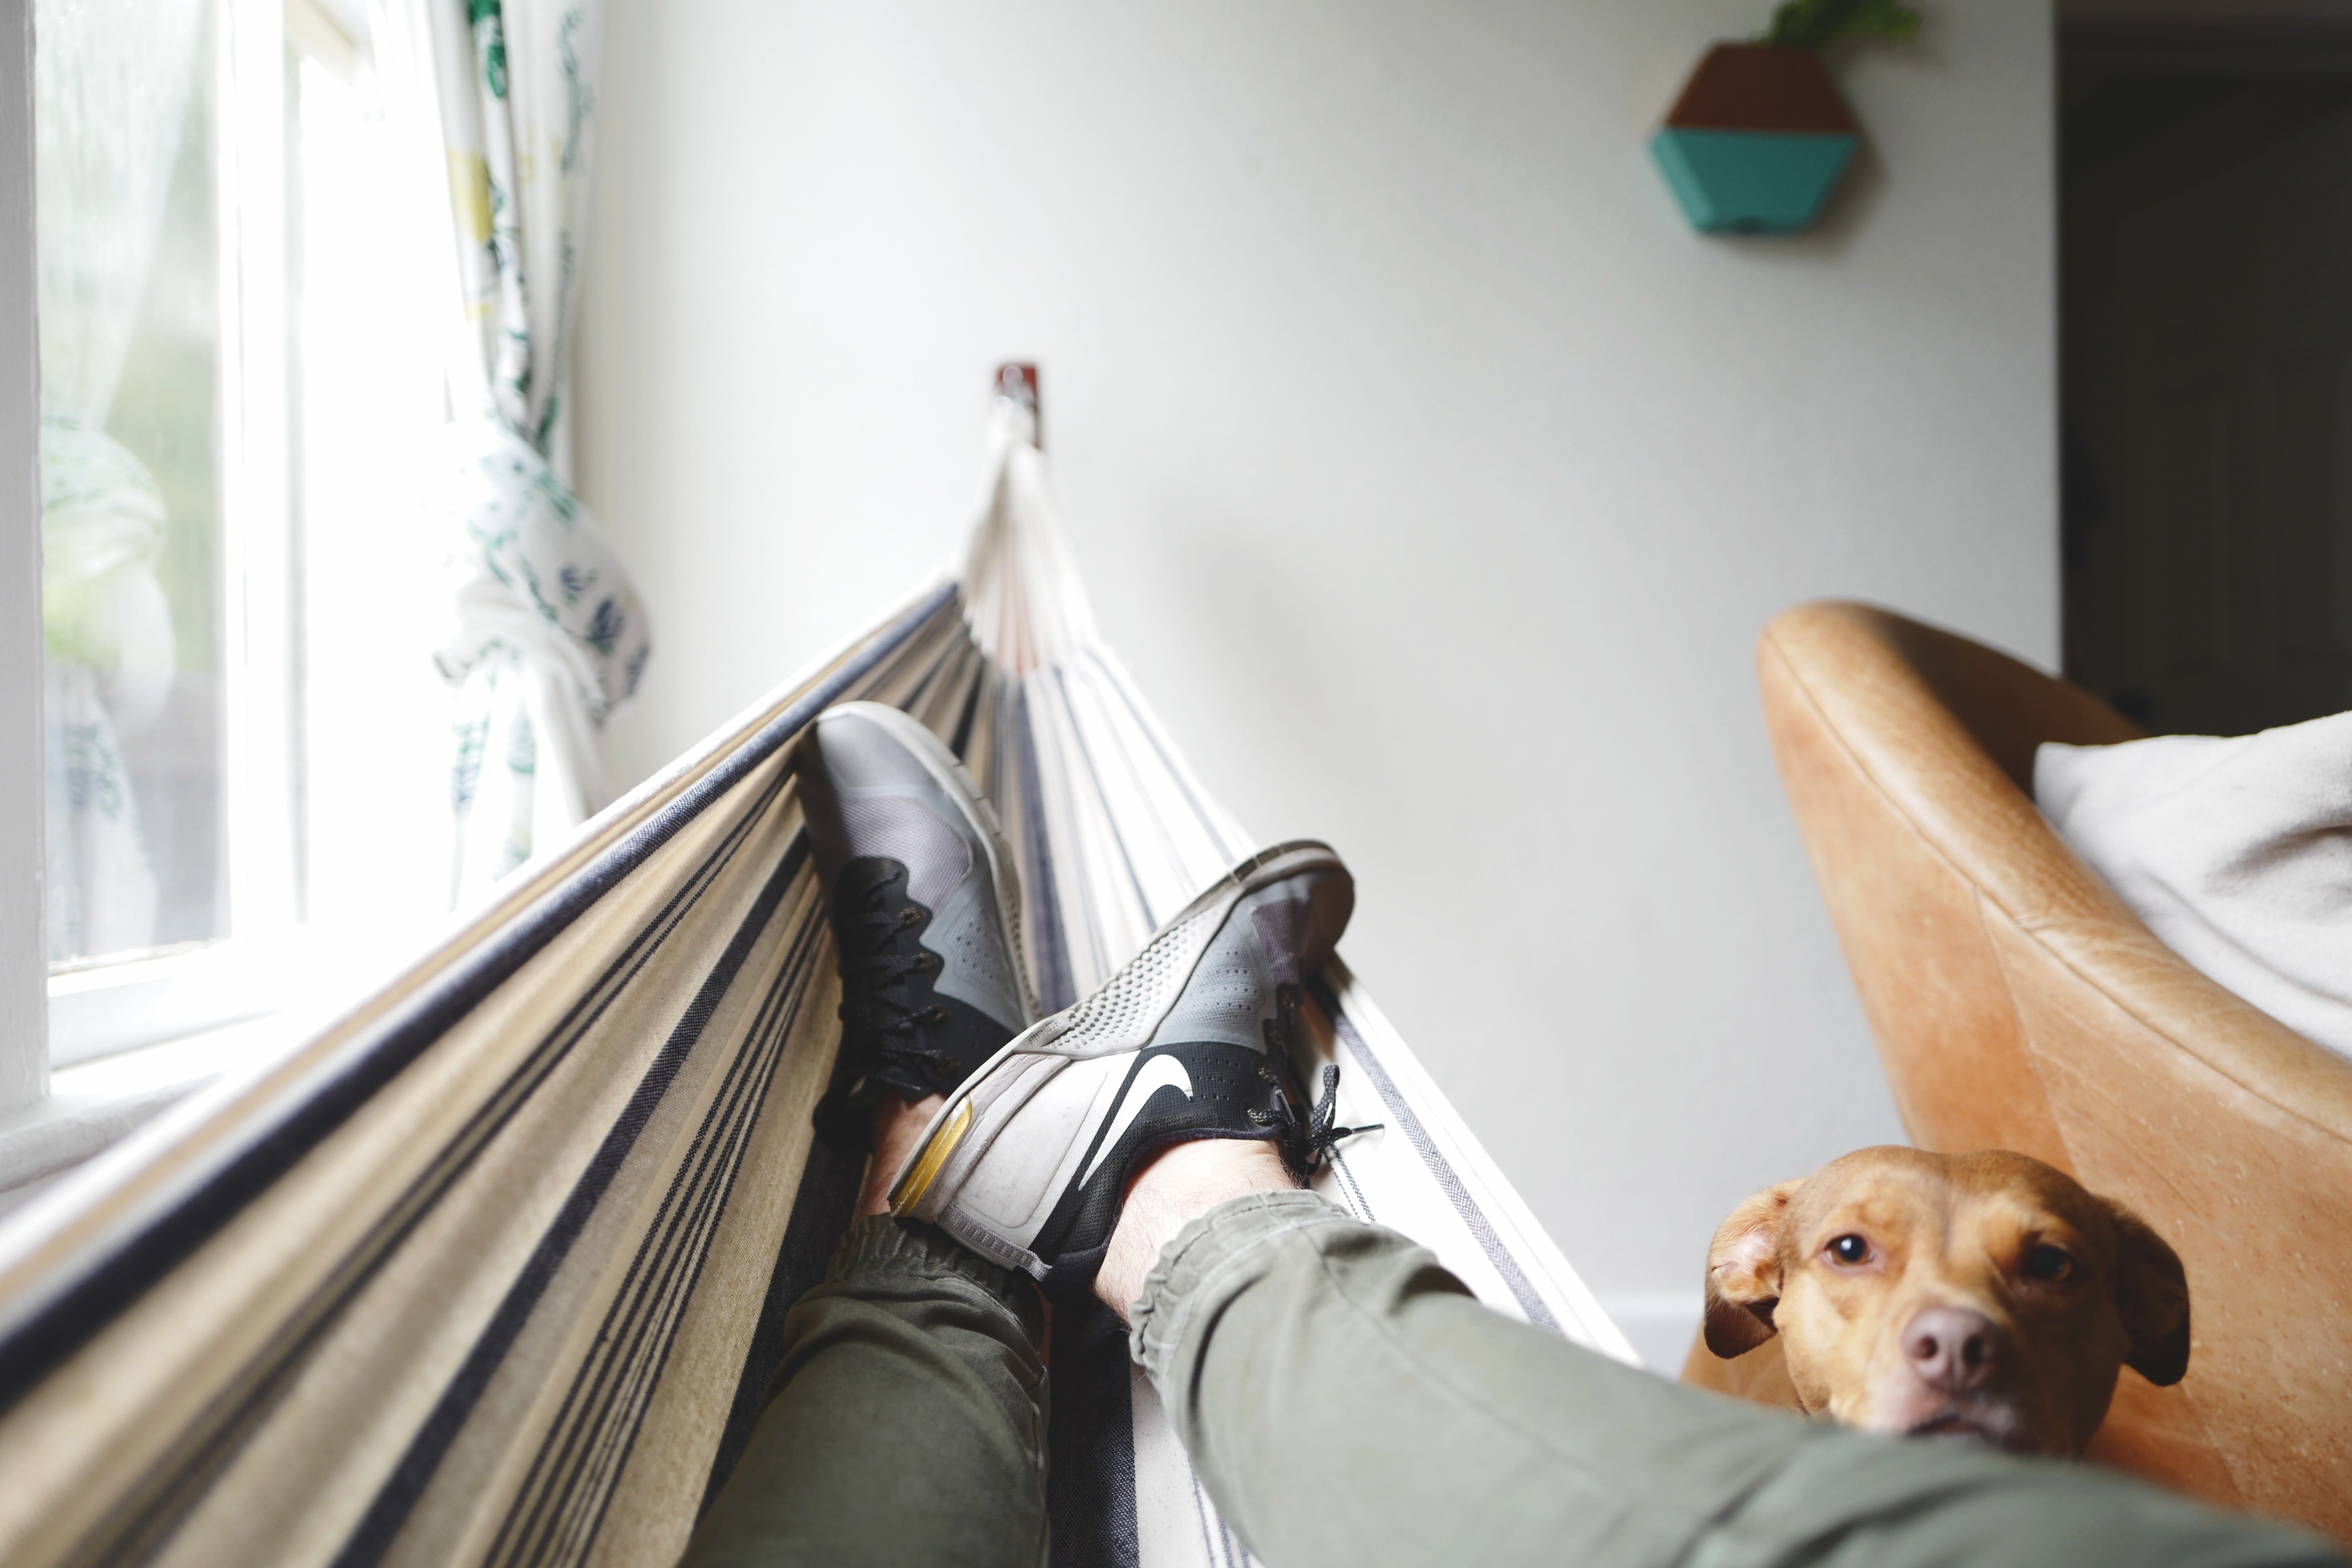 Man in hammock being watched by dog; image by Drew Coffman, via Unsplash.com.